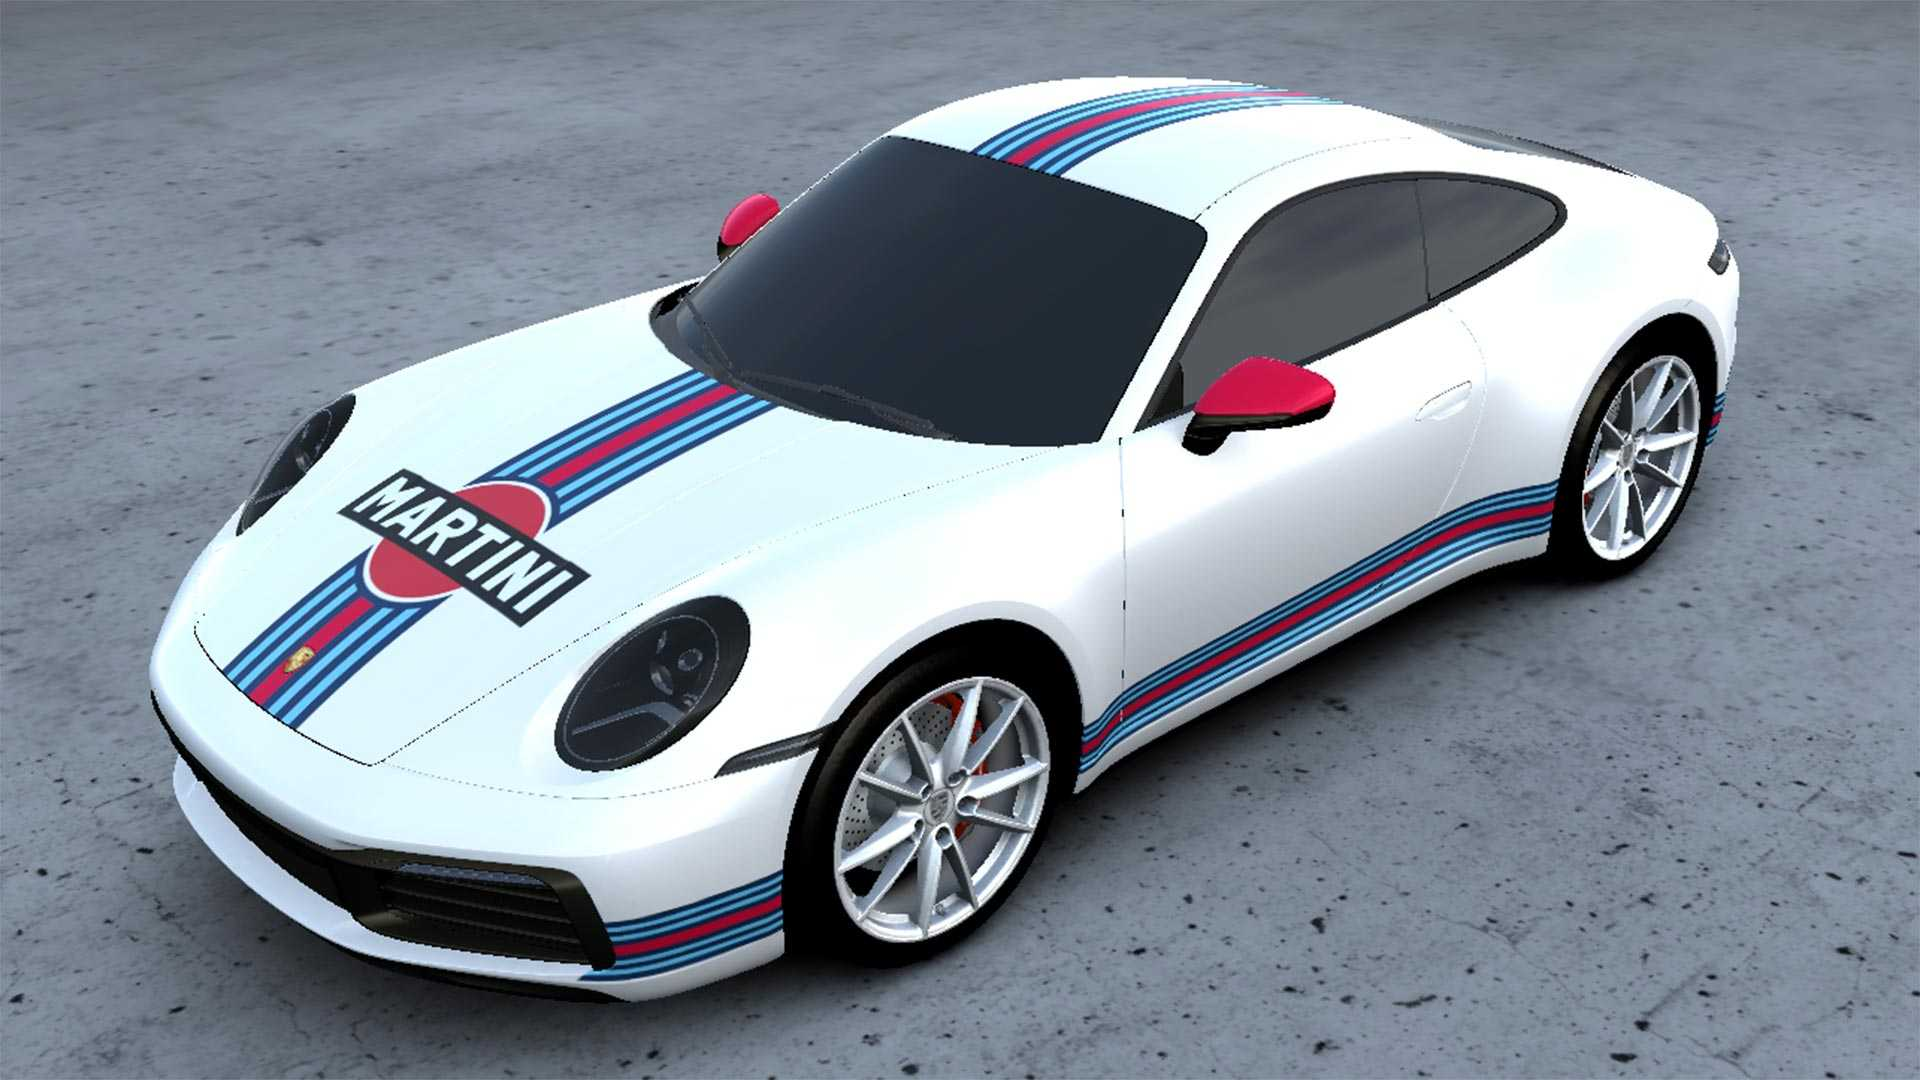 new porsche service lets you wrap your car in martini racing livery wrap your car in martini racing livery